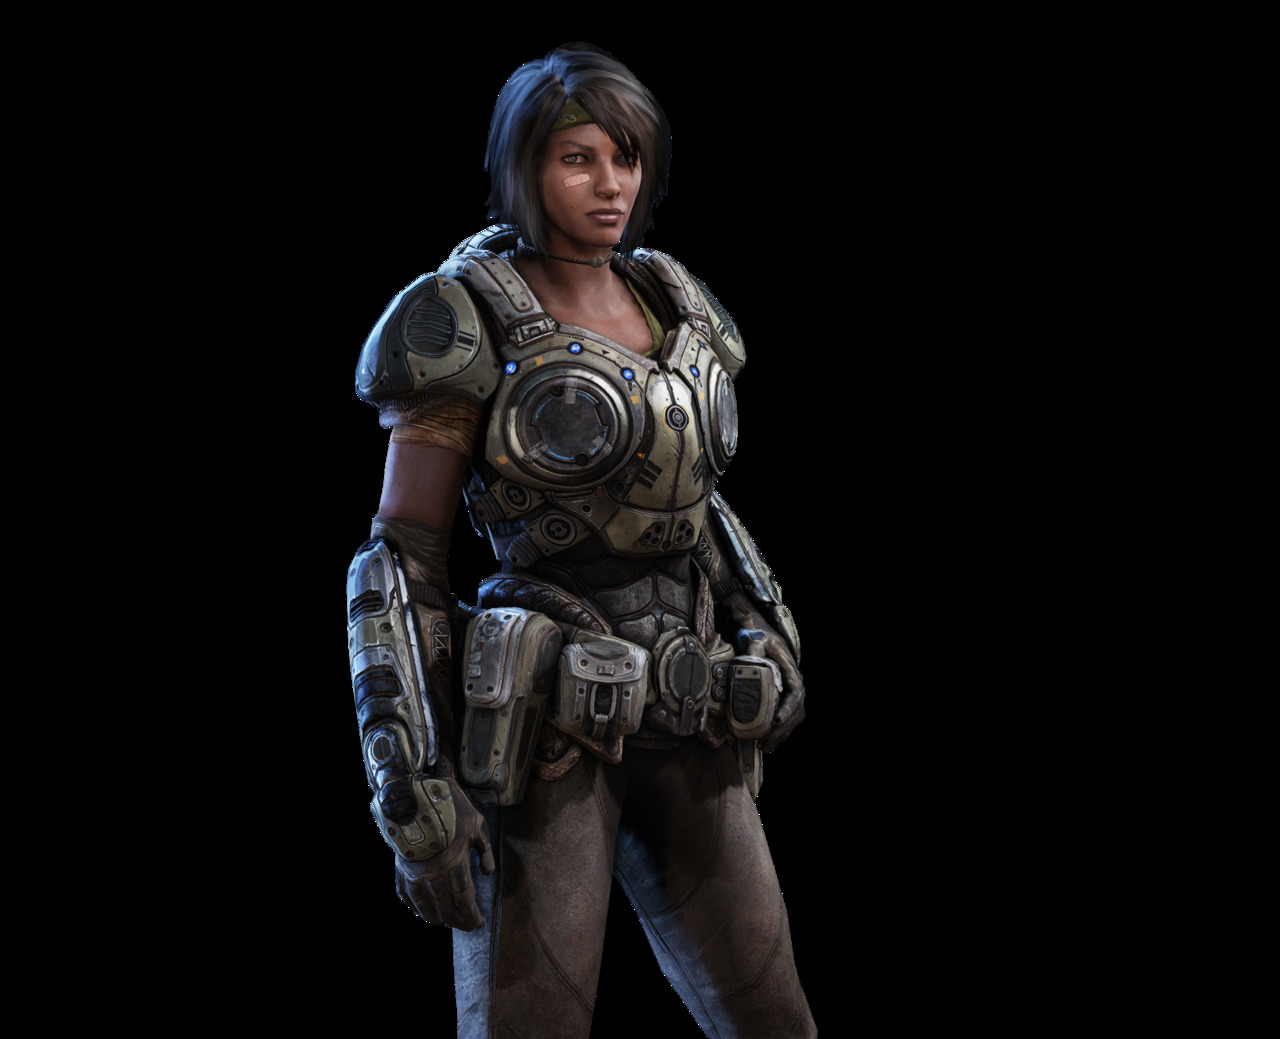 Artworky a screenshoty z Gears of War 3 44673